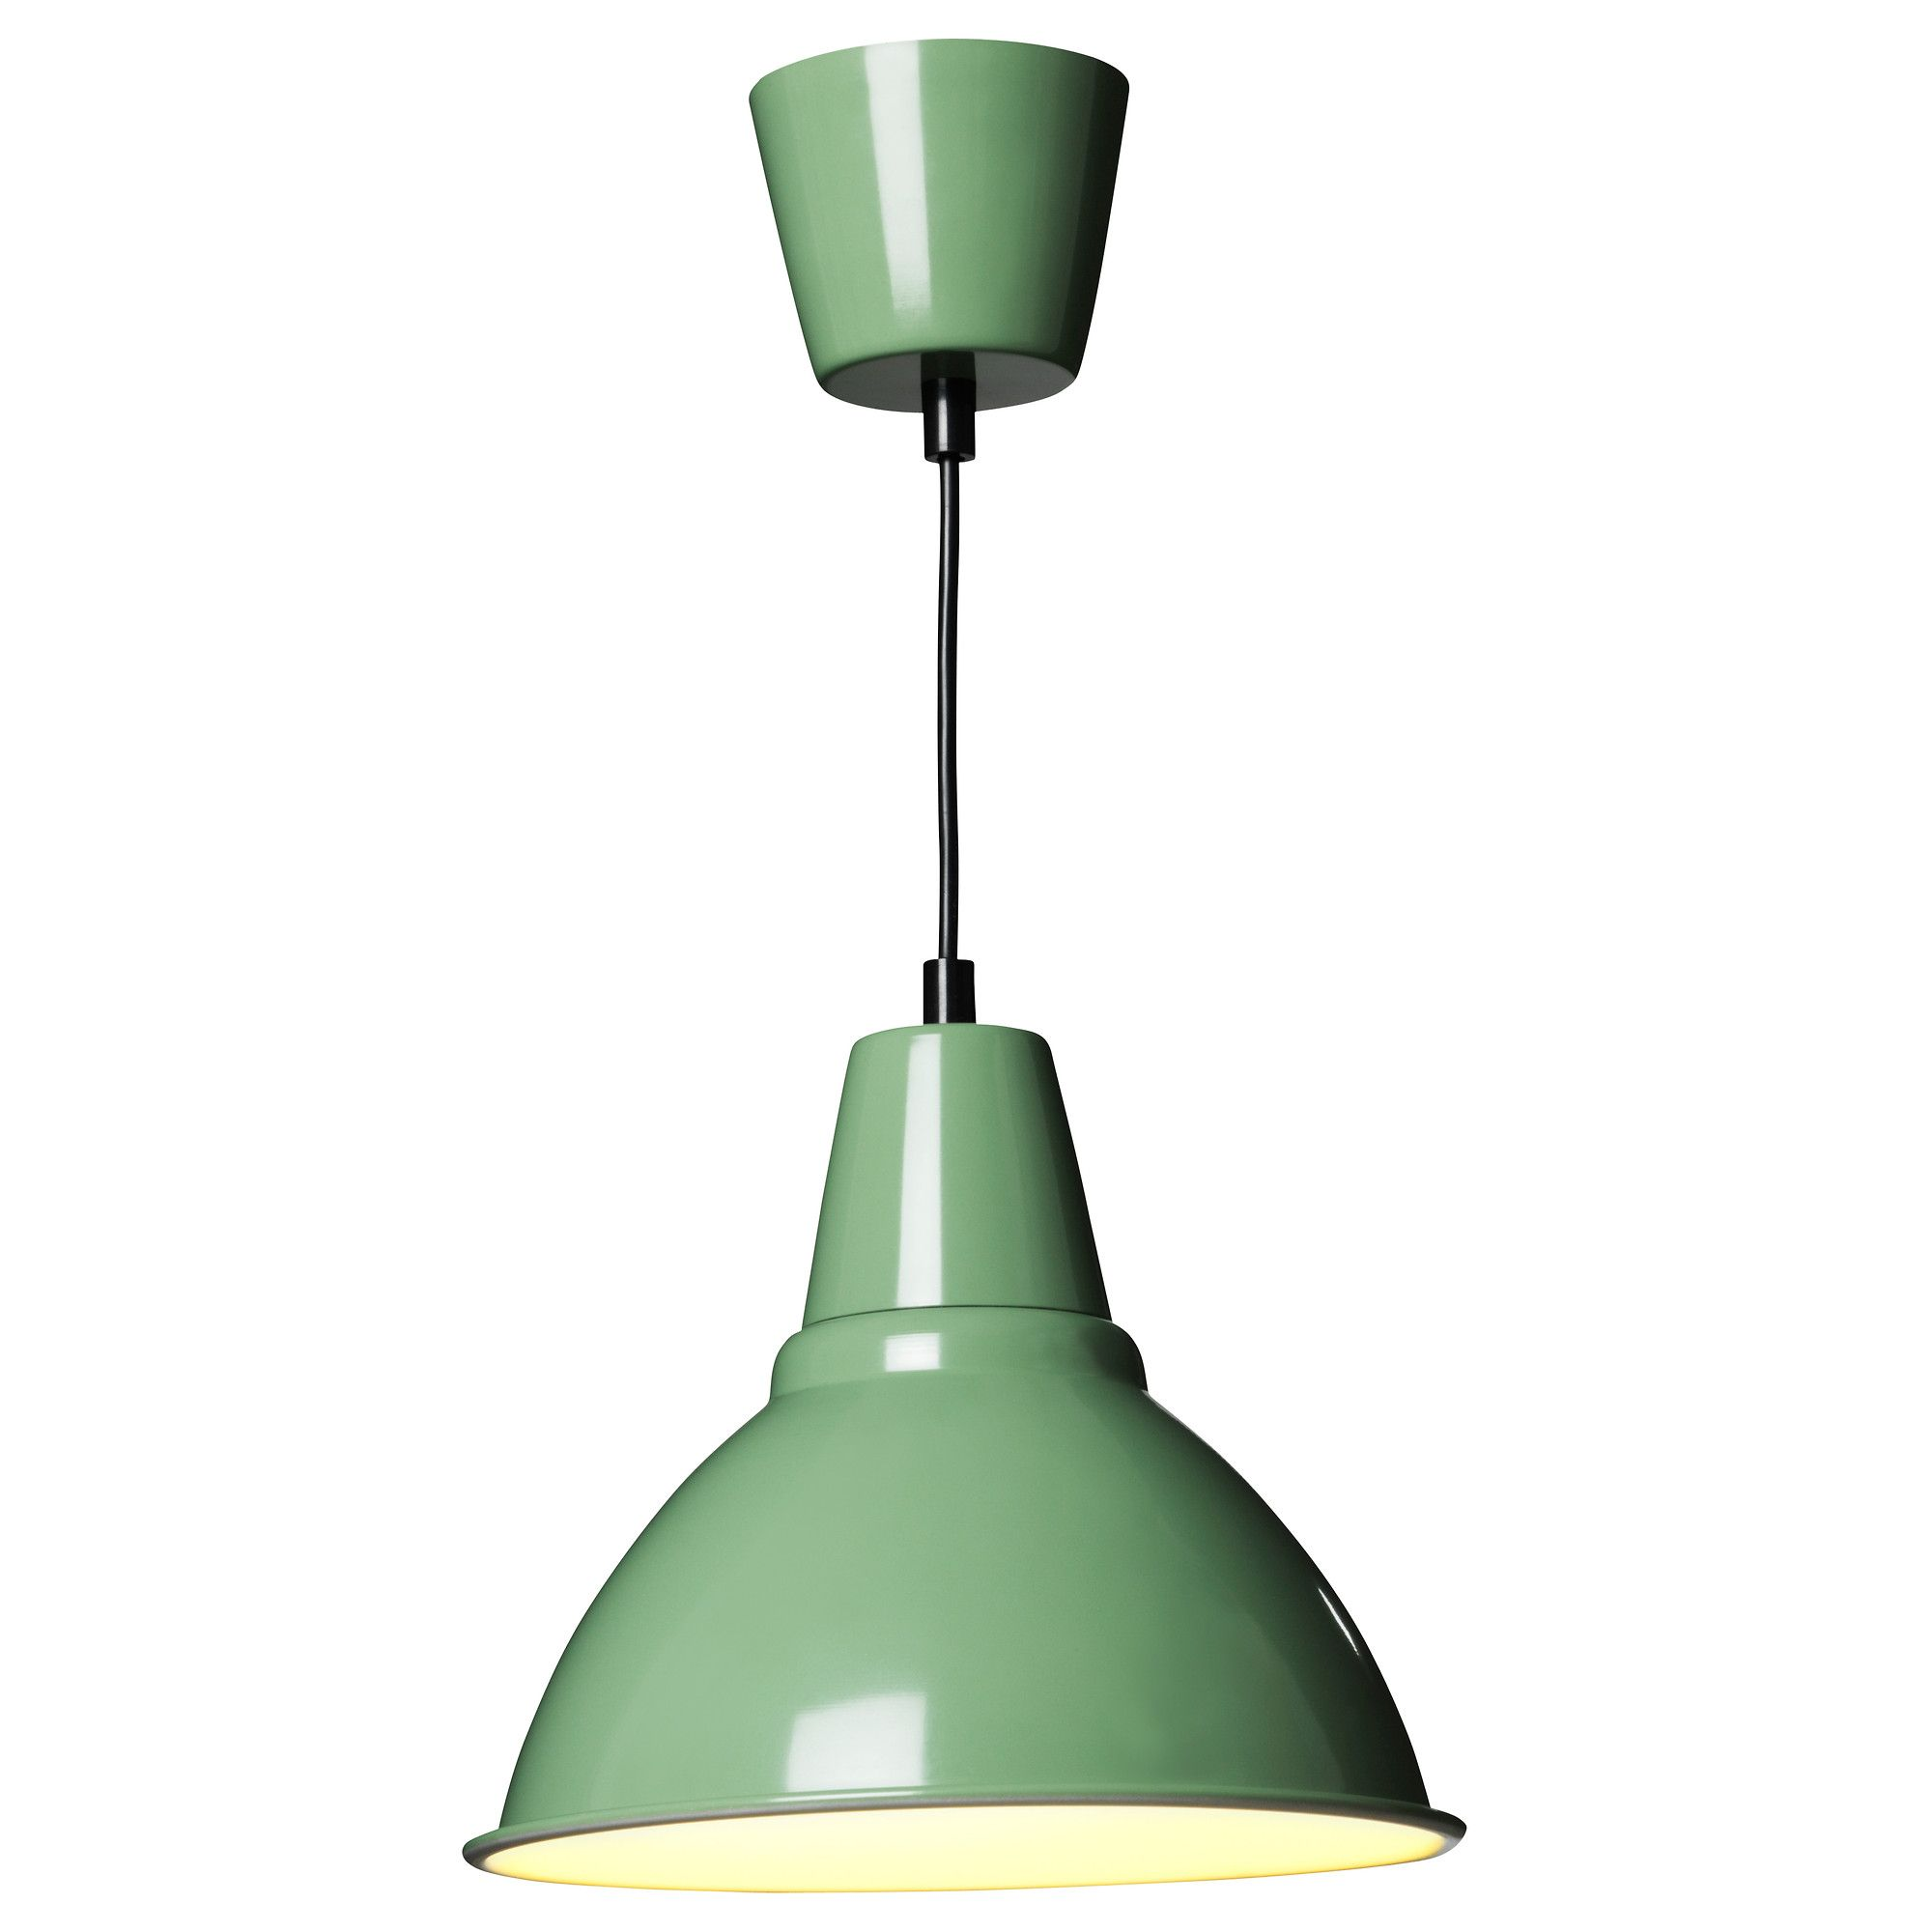 Foto pendant lamp green ikea 1499 for the home pinterest ikea foto pendant lamp green green 25 cm can spray paint inside or outside too mozeypictures